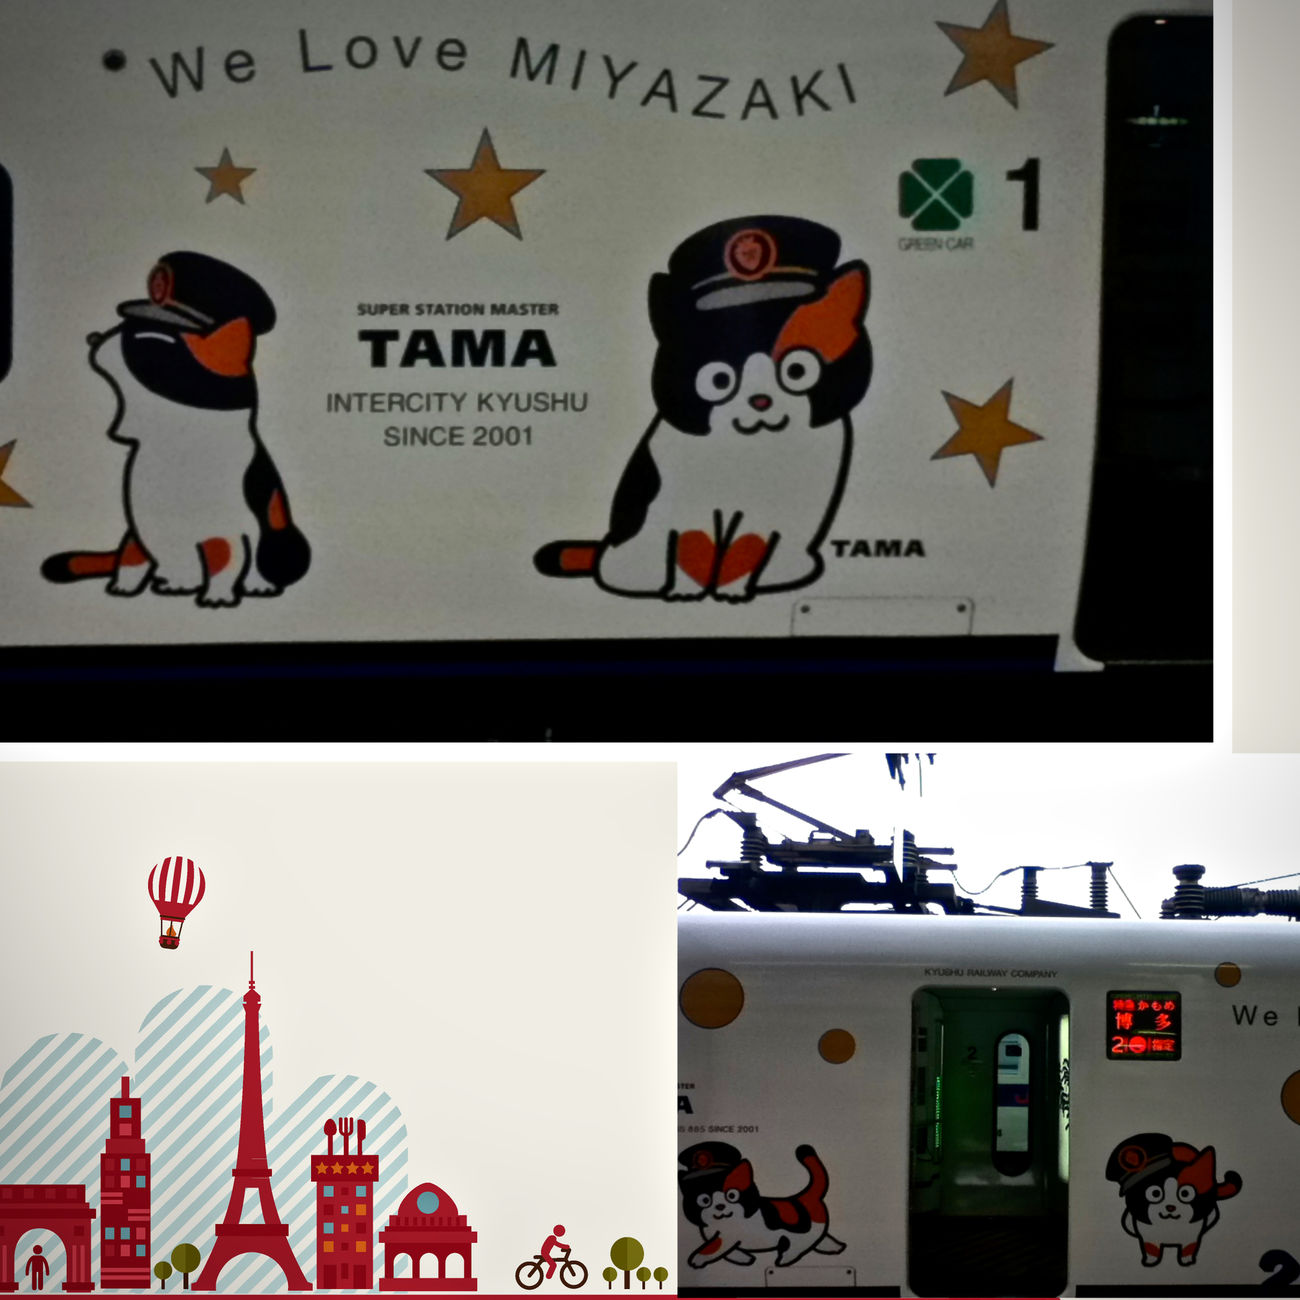 Finding Nagasaki Cat ? extra : ULTRA STATION MASTER TAMA🐱 by WAKAYAMA ELECTRIC RAILWAY JR Kyushu Kamome 885 タマ駅長 Wrapping Train / Cat Lovers Fotor Collage IPod Touch Photography Japan 2010 Nagasaki Station On The Platform 水戸岡鋭治 +Don Design Associates